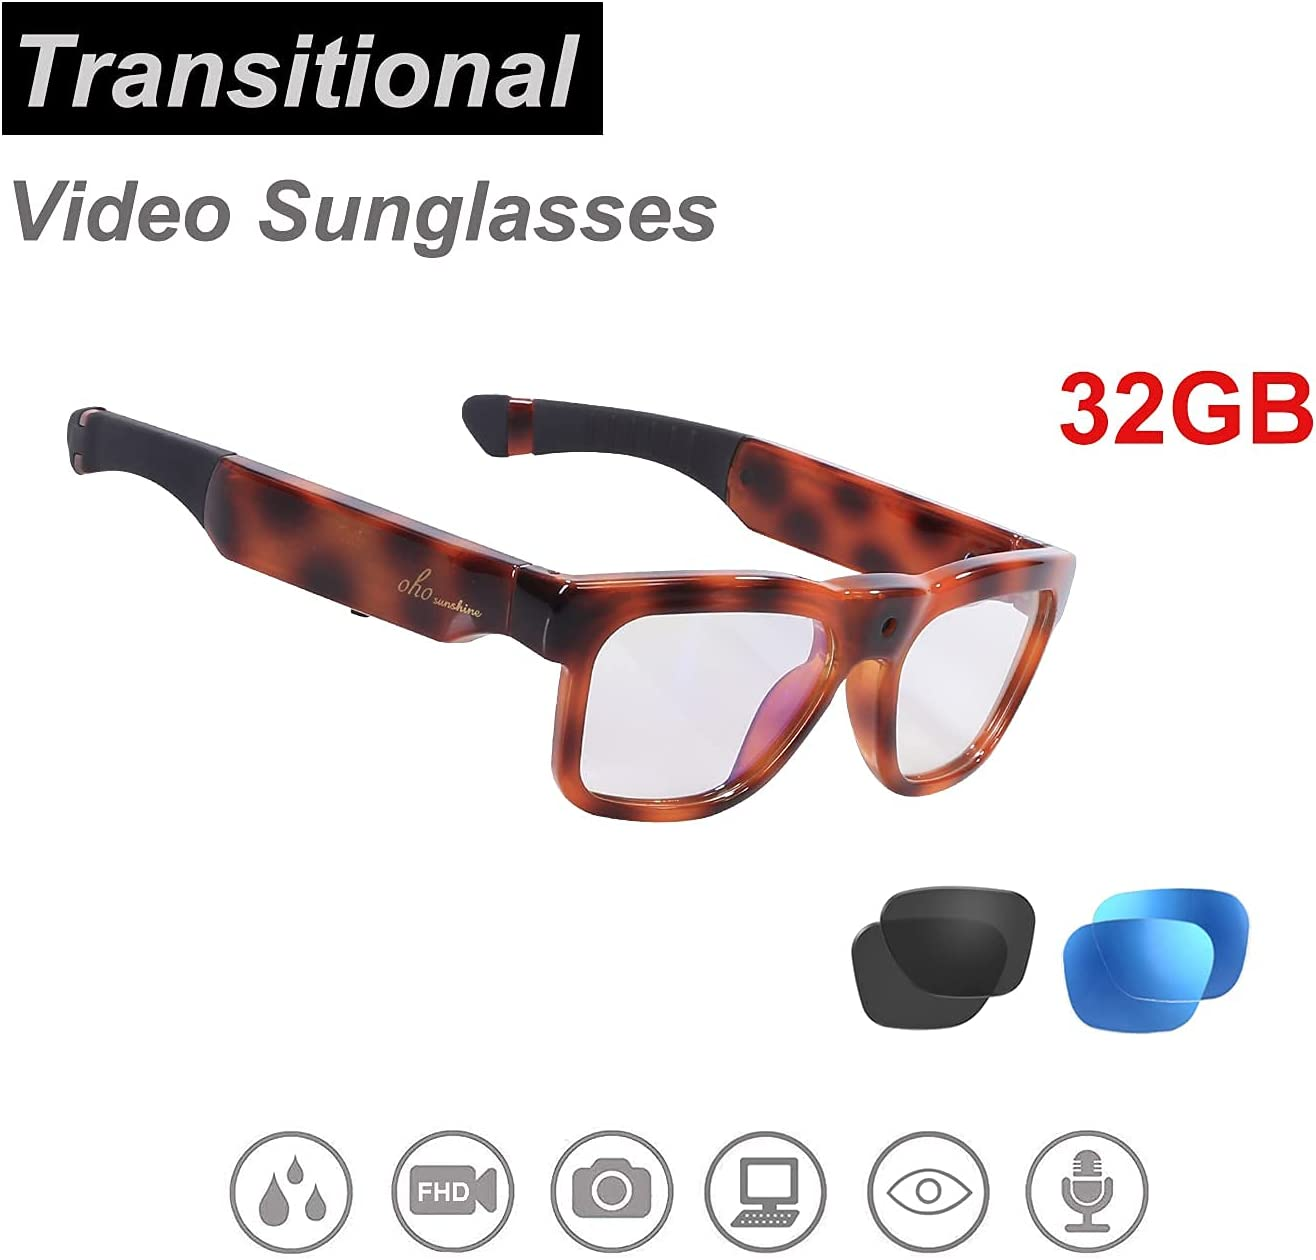 OhO Mini Camera Sunglasses, Water Resistance Ultra Full HD Camera with Built-in 32GB Memory and Blue Light Blocking and Transitional Safety Lens for Indoor and Outdoor Use